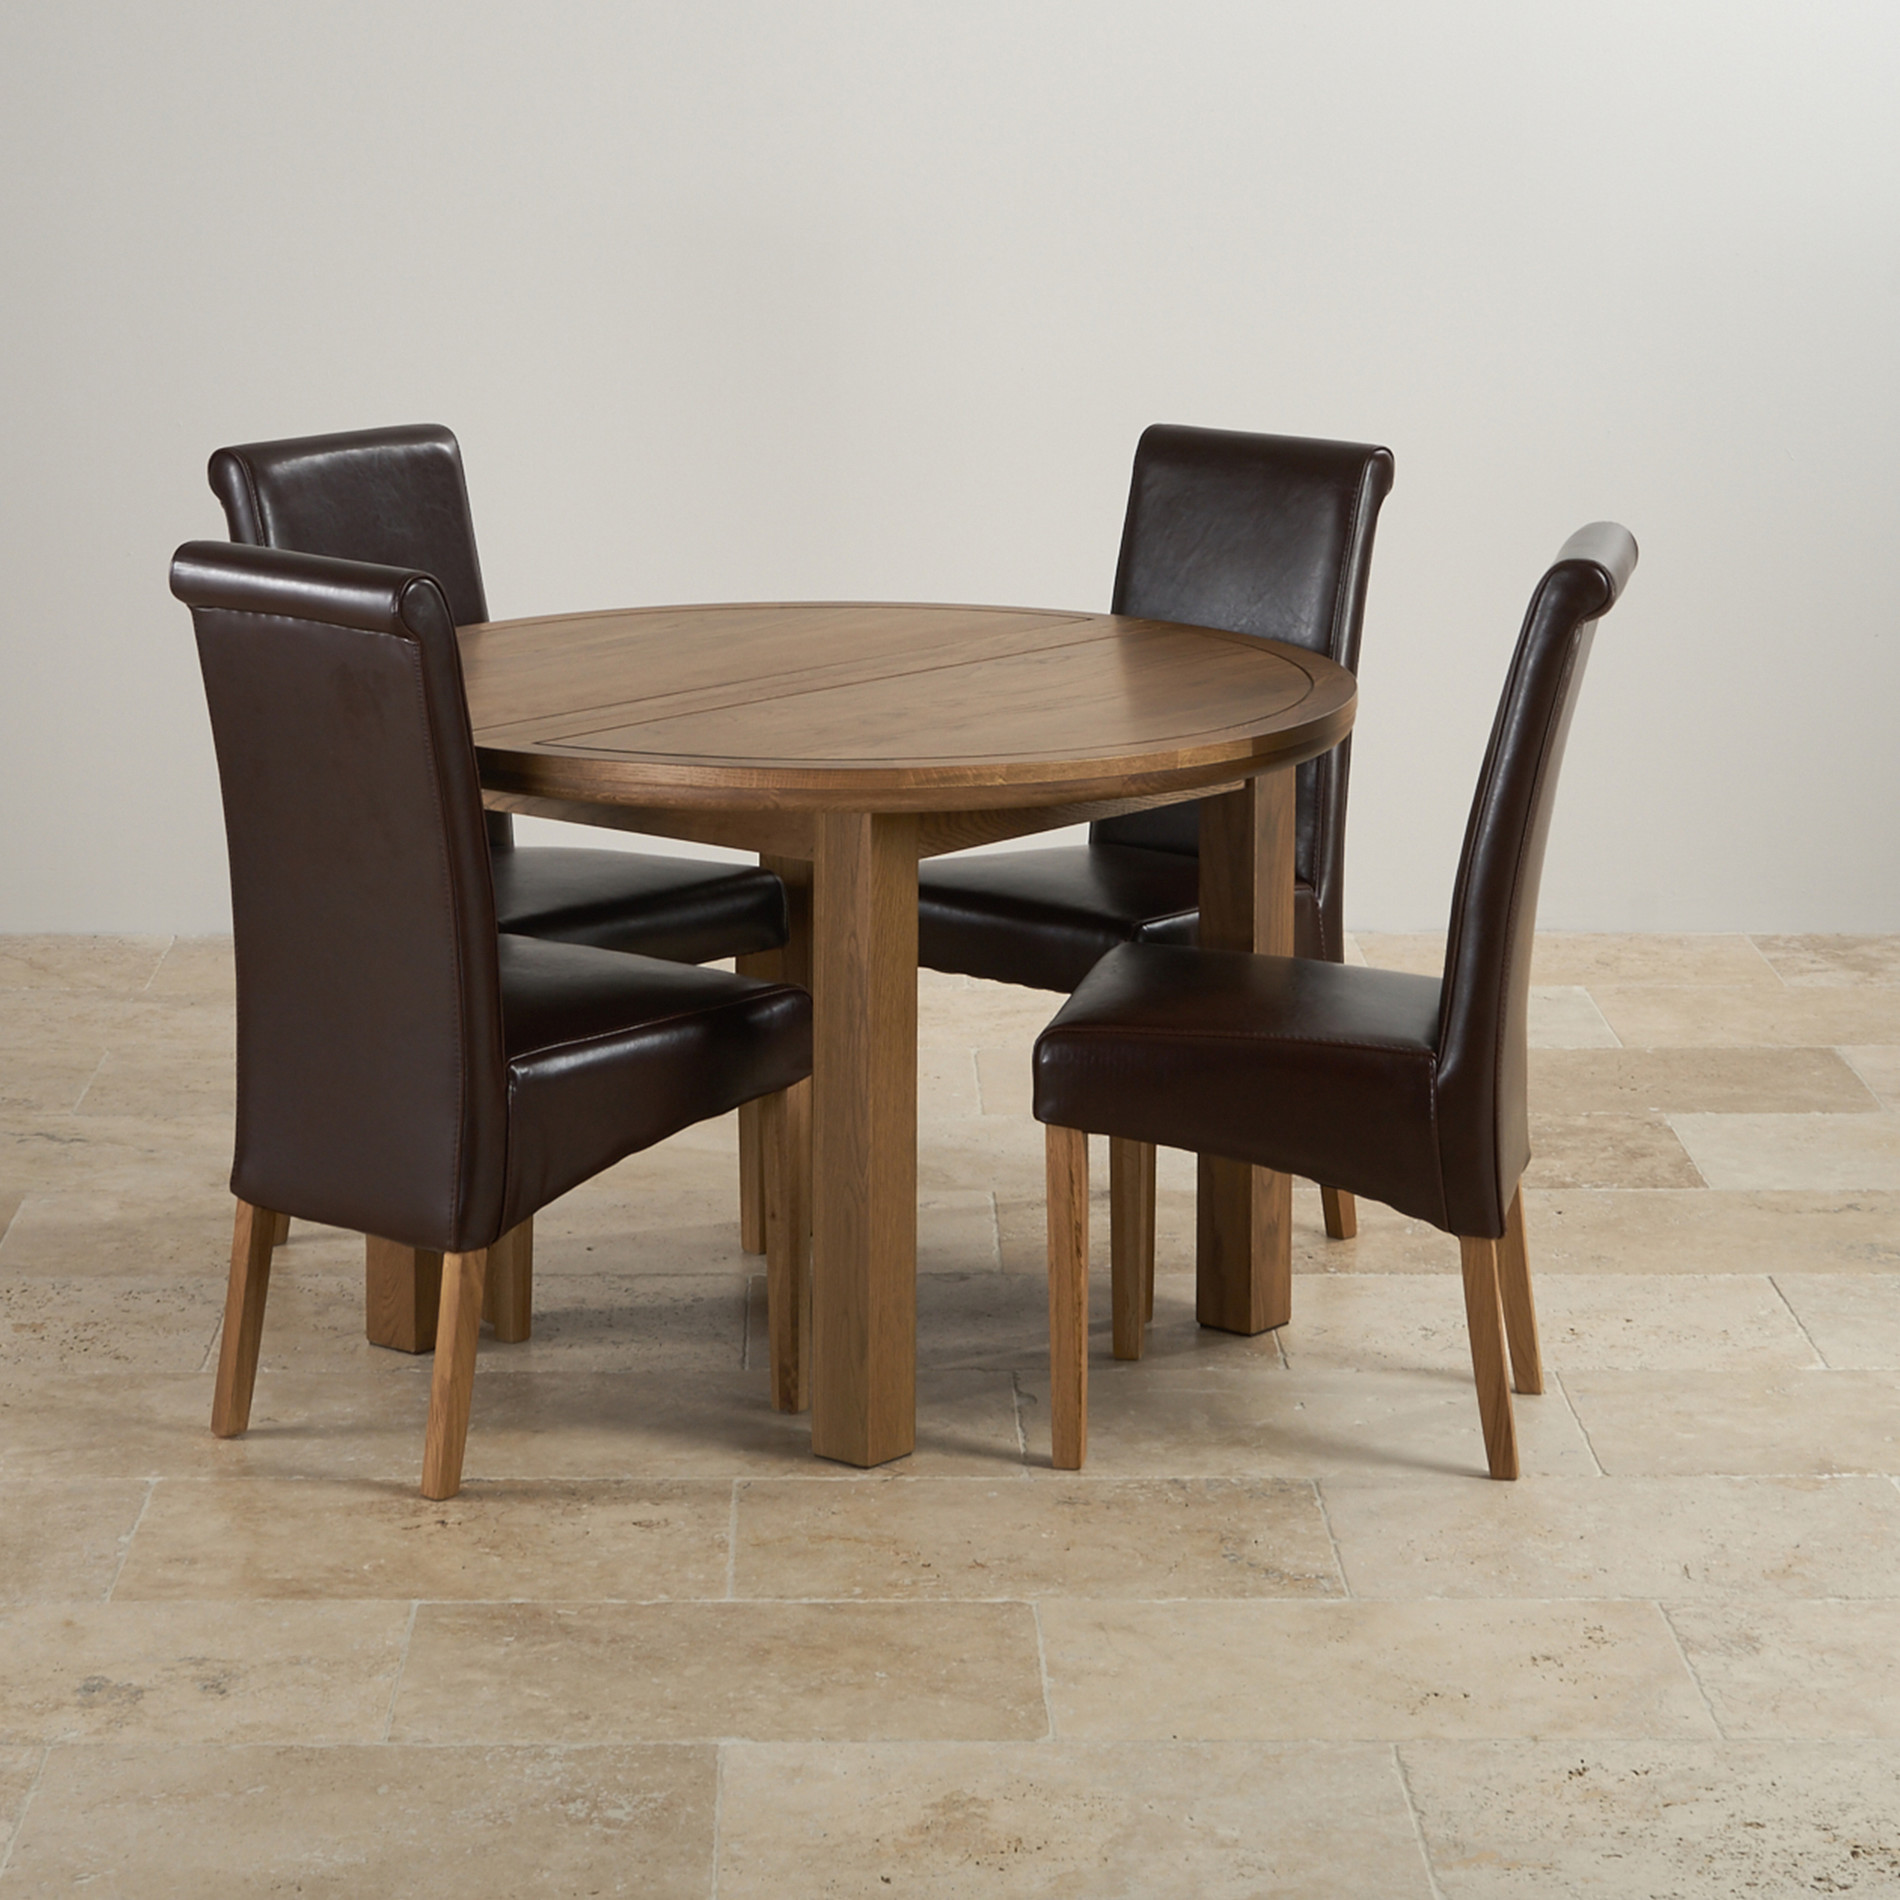 Dining Chairs Set Knightsbridge Round Extending Dining Set Dining Table 43 4